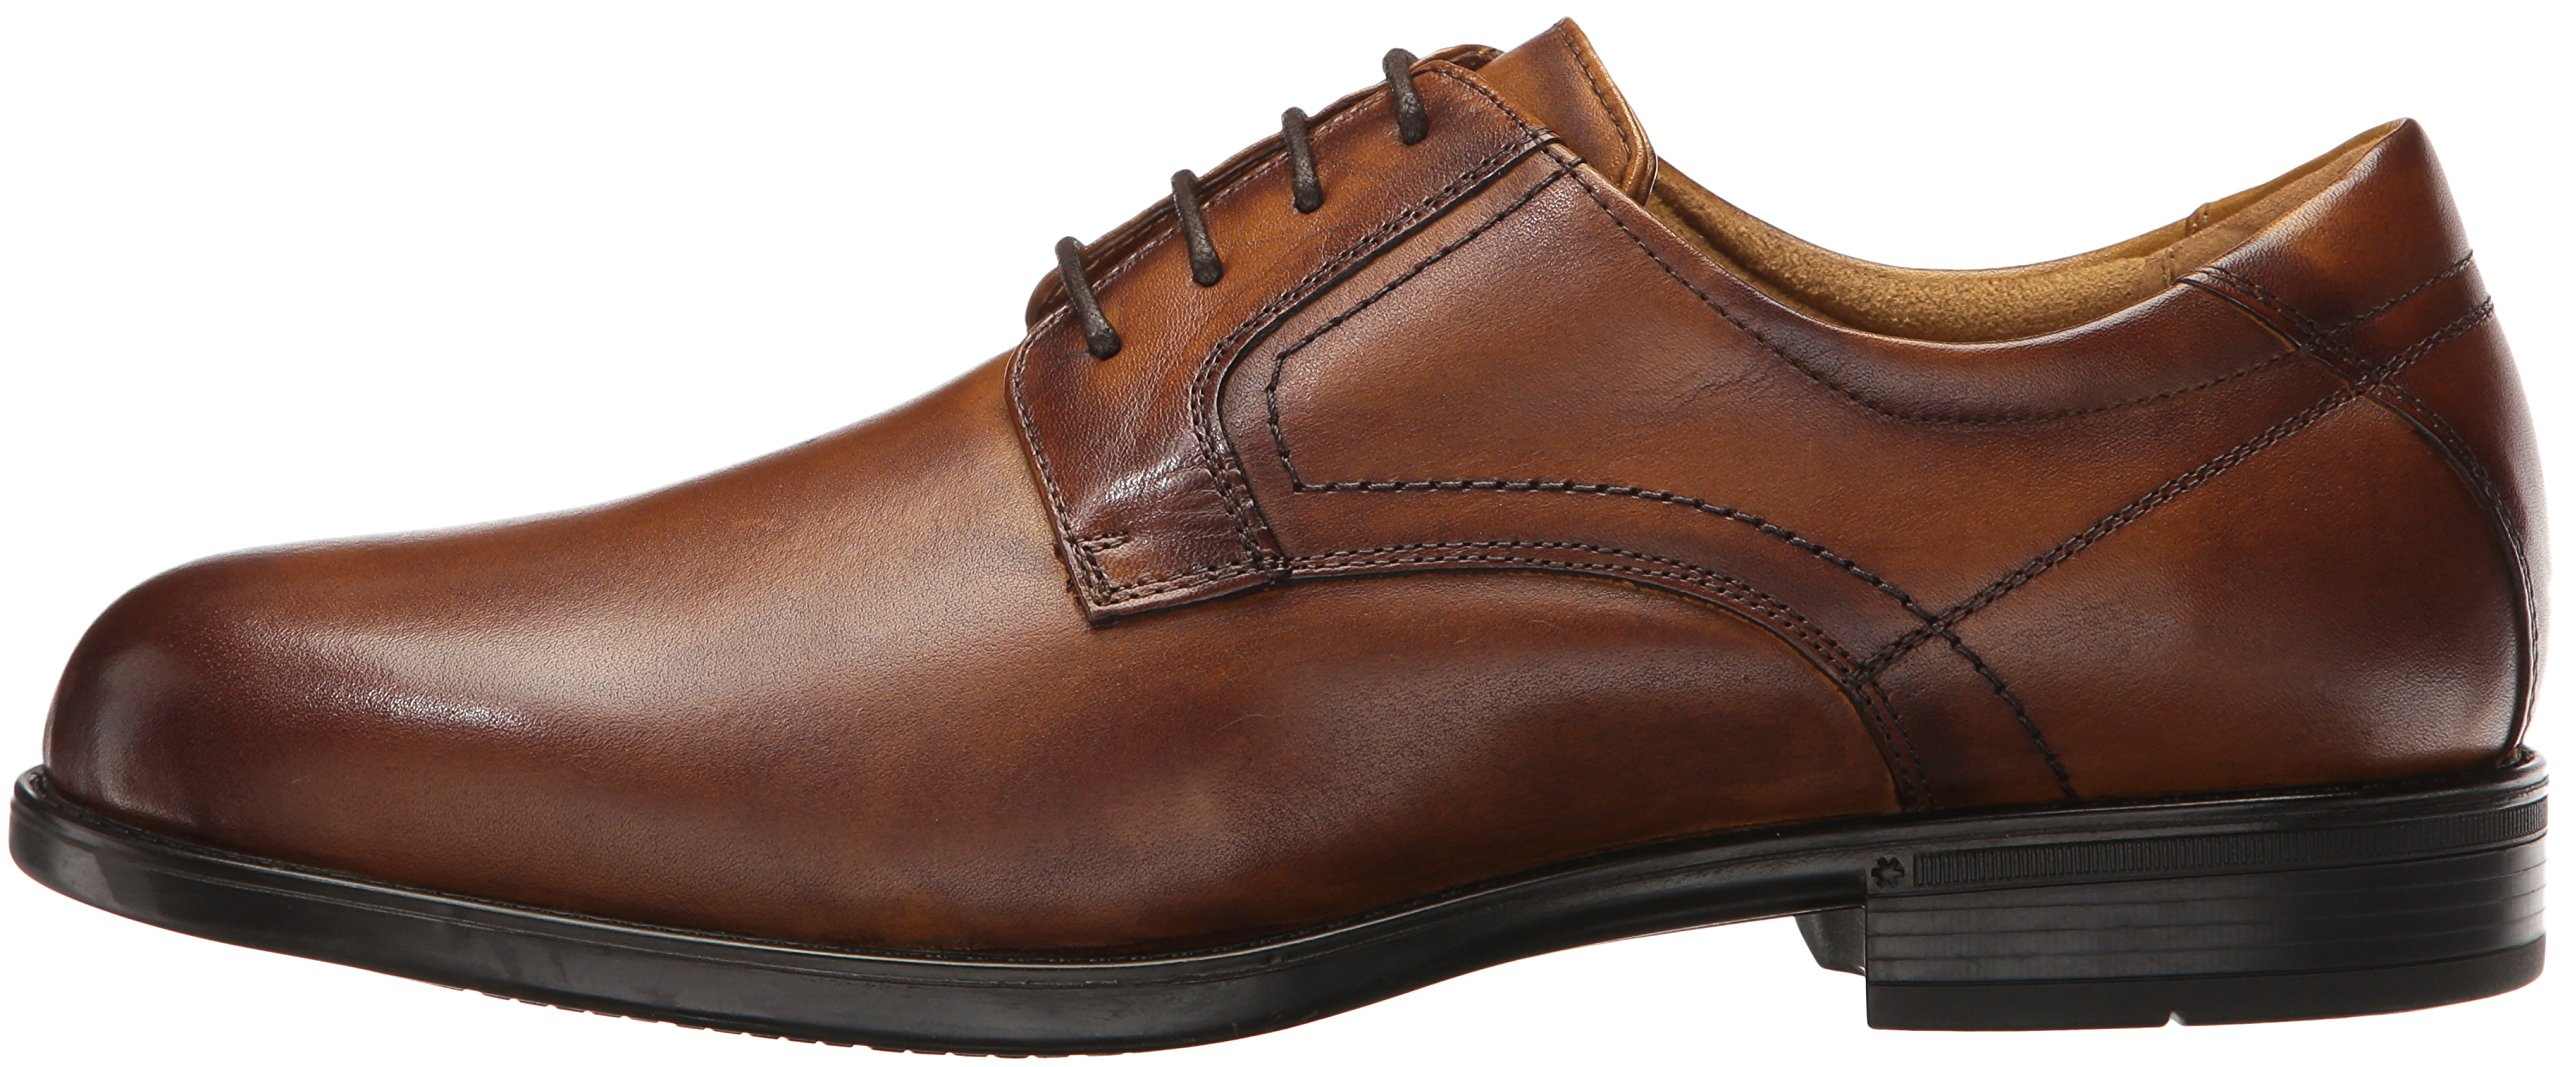 Florsheim Men's Medfield Plain Toe Oxford Dress Shoe, Cognac, 8 D US by Florsheim (Image #5)